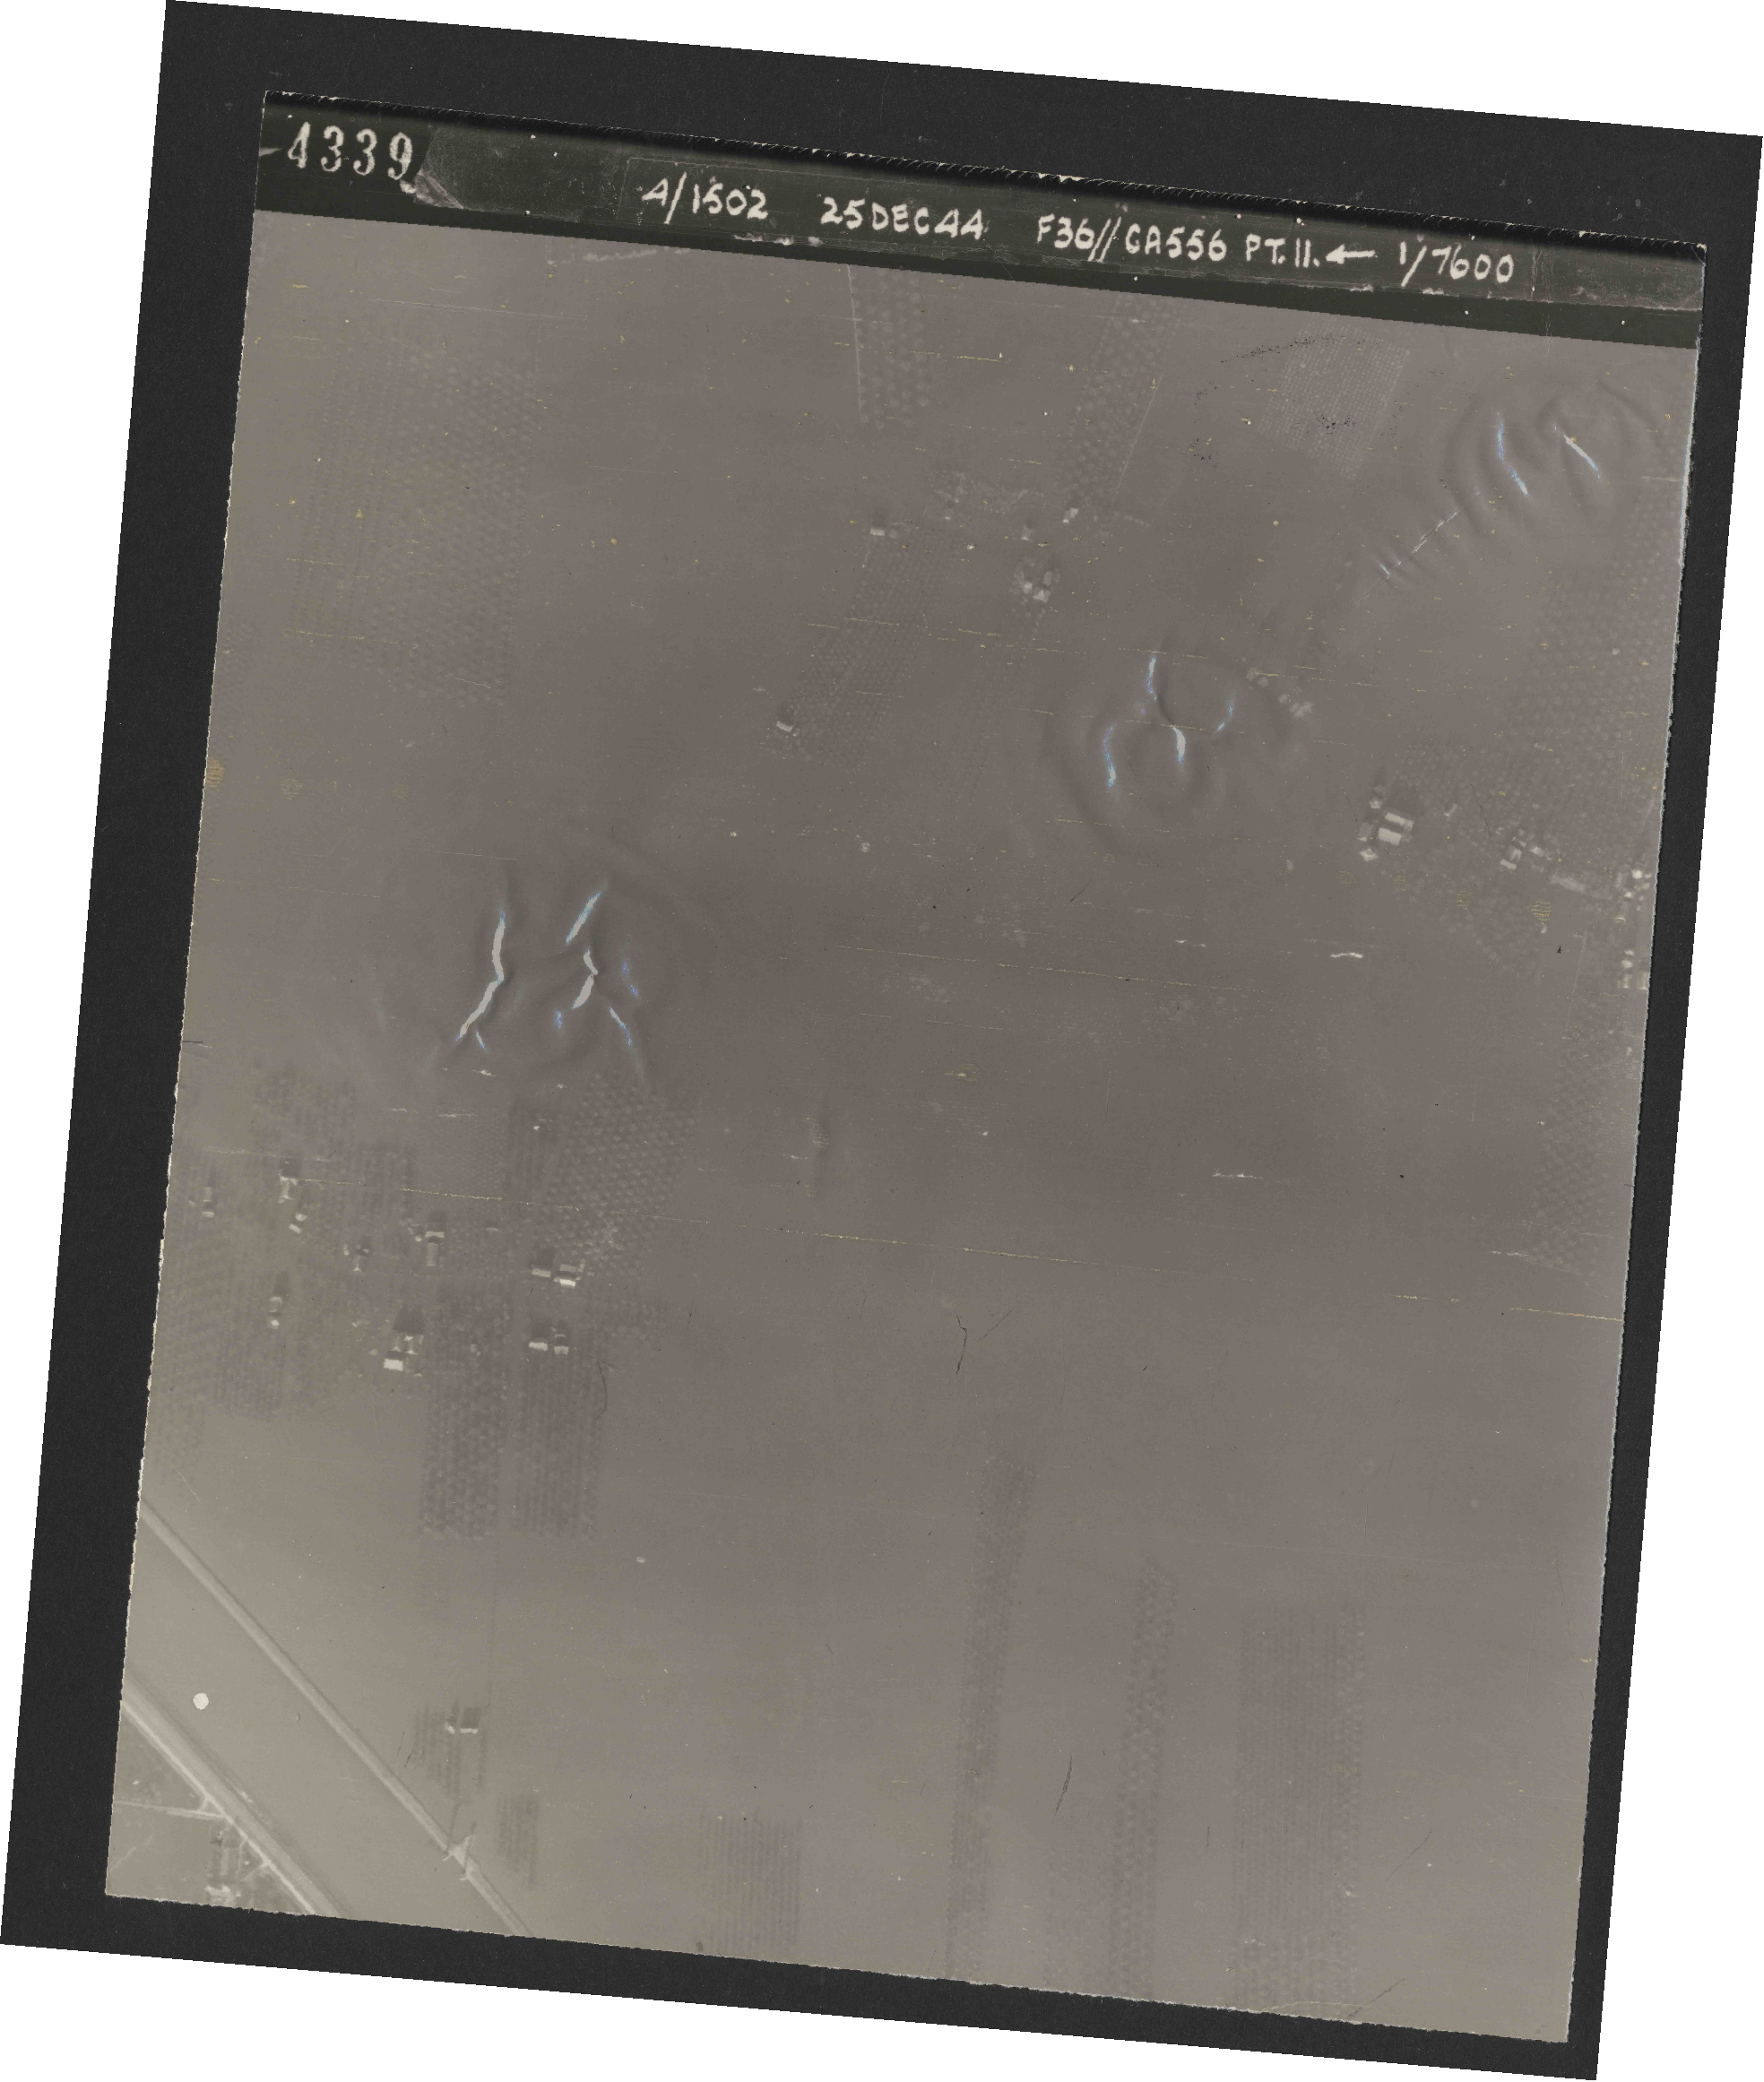 Collection RAF aerial photos 1940-1945 - flight 306, run 11, photo 4339